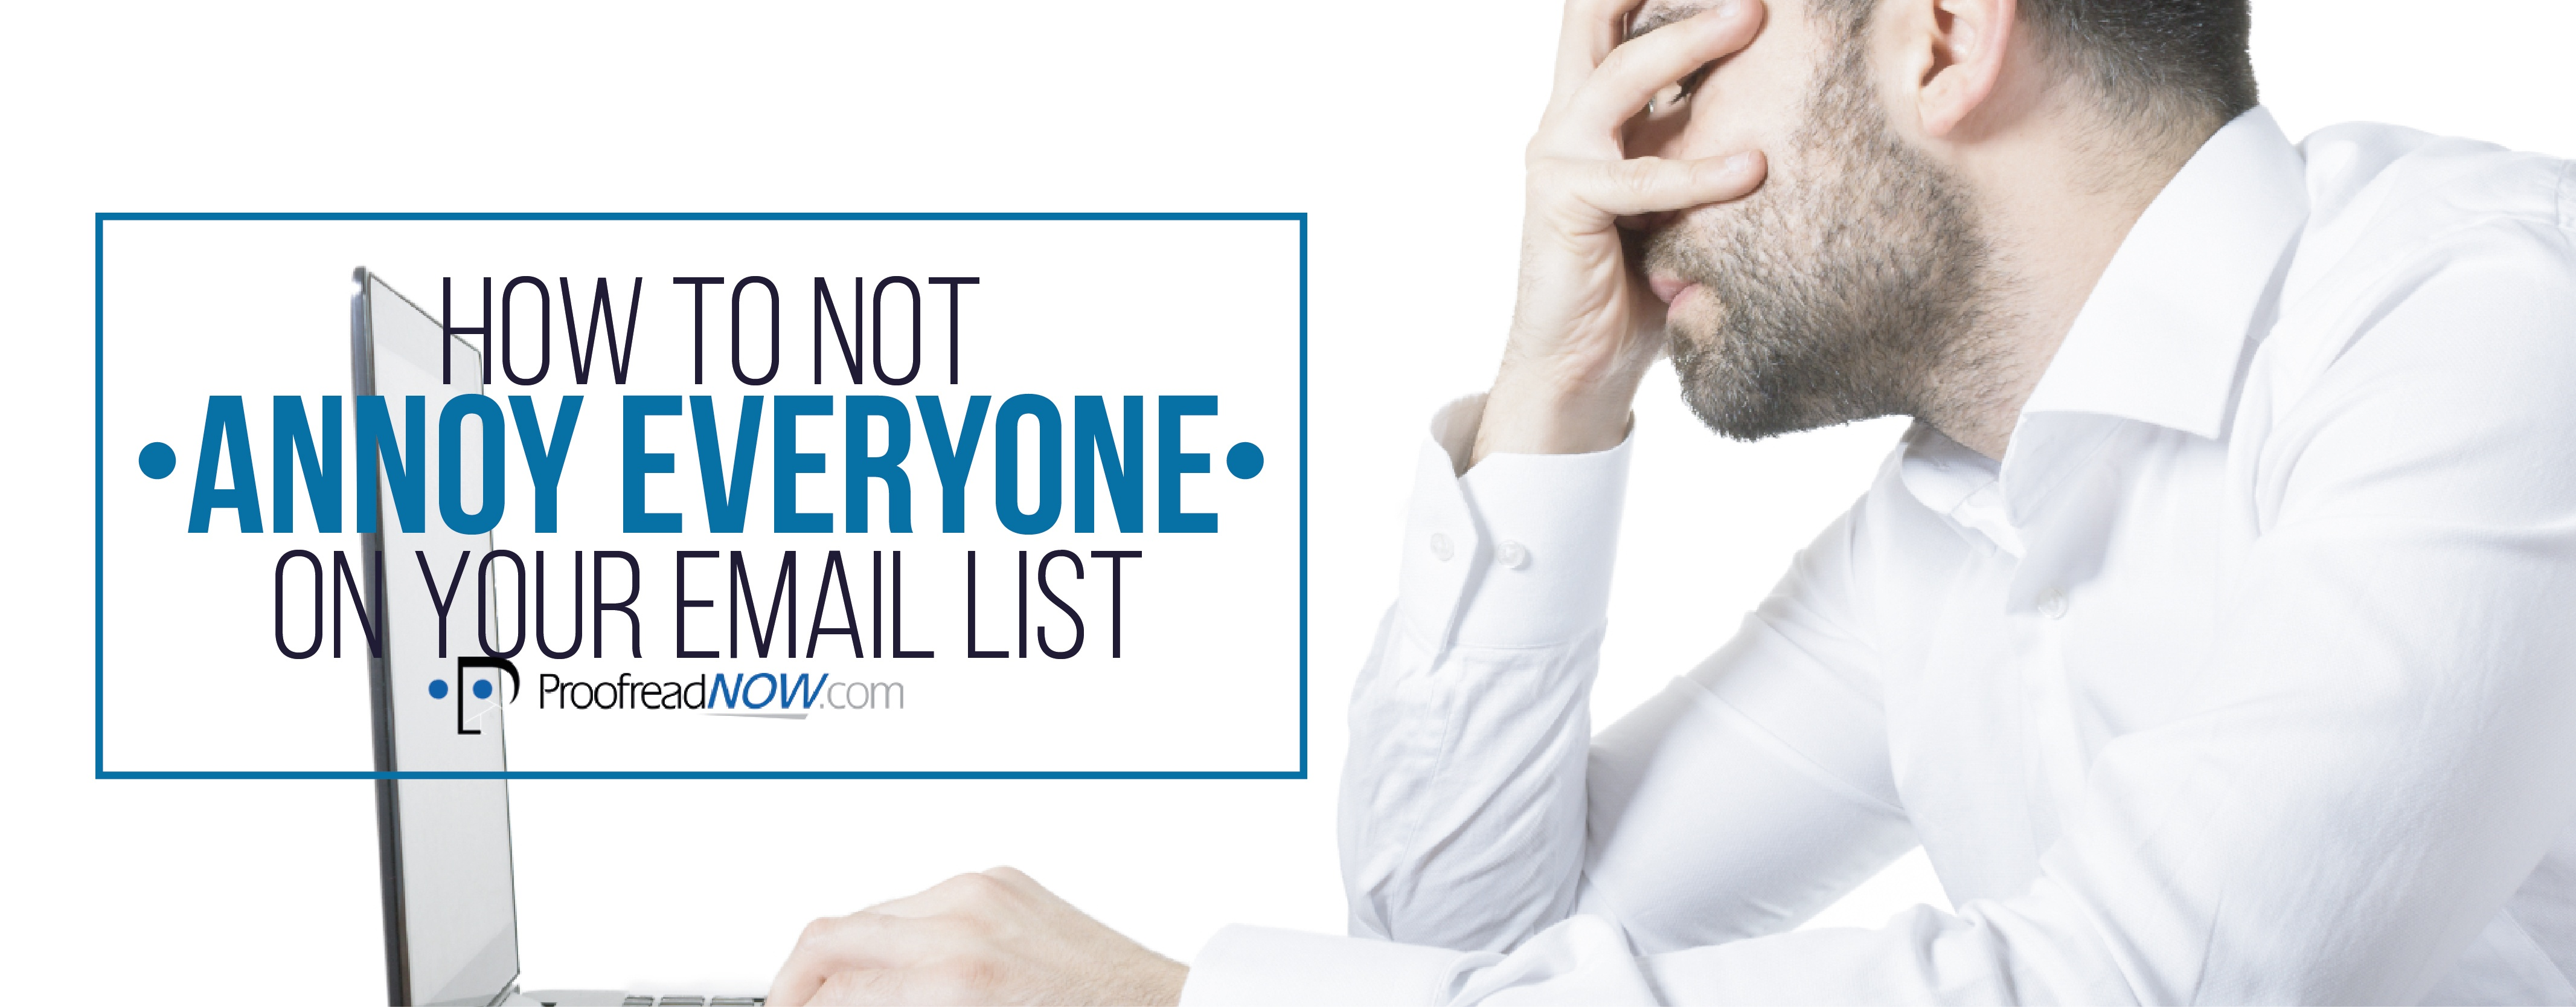 How To Not Annoy Everyone on Your Email List